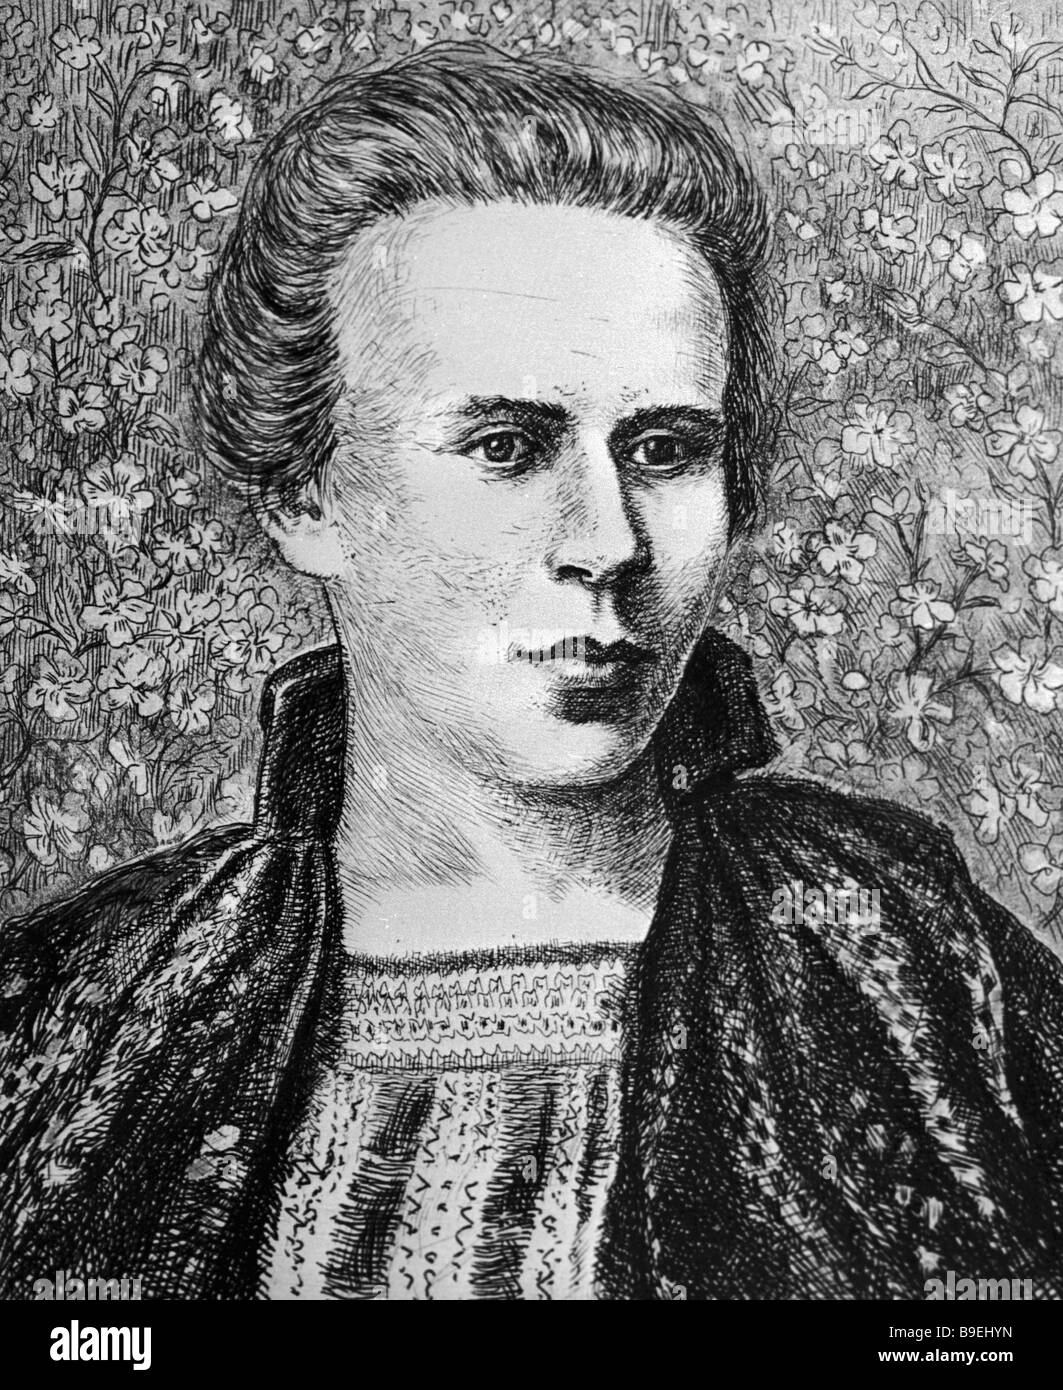 Reproduction of etching A Portrait of Lesya Ukrainka by Vasily Kassiyan - Stock Image